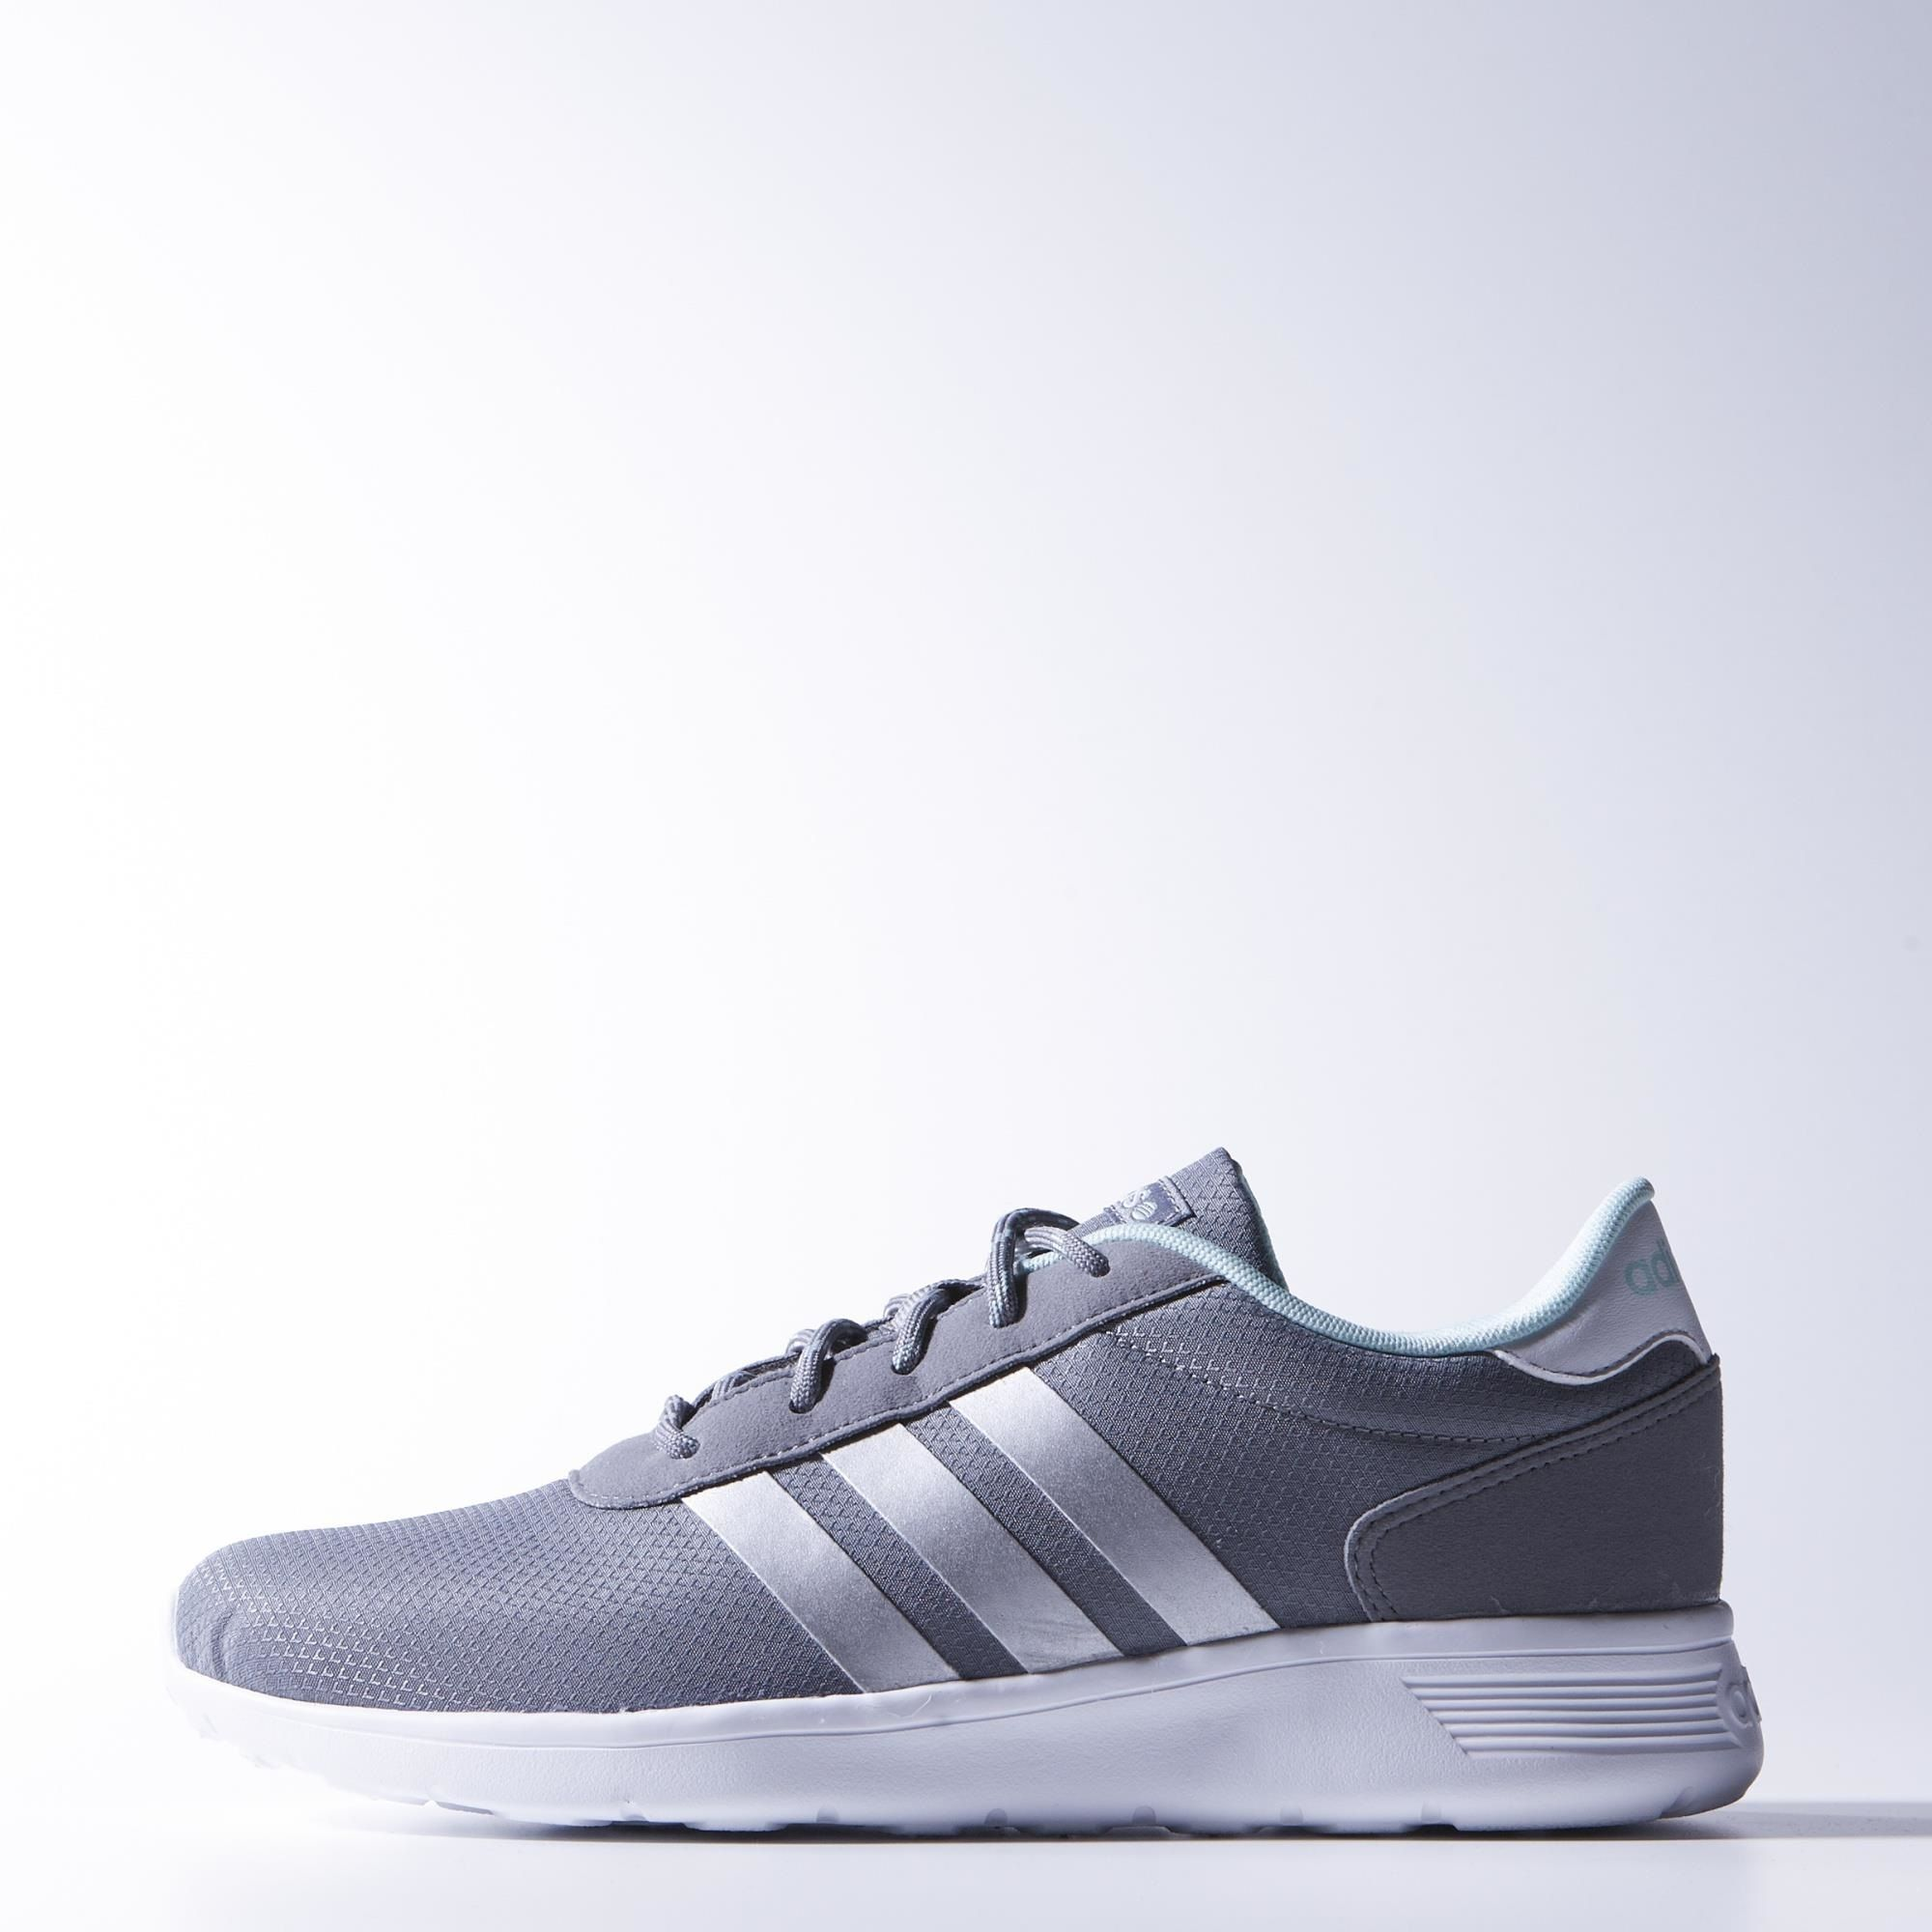 Shop our official selection of adidas Racer - Shoes at adidas.